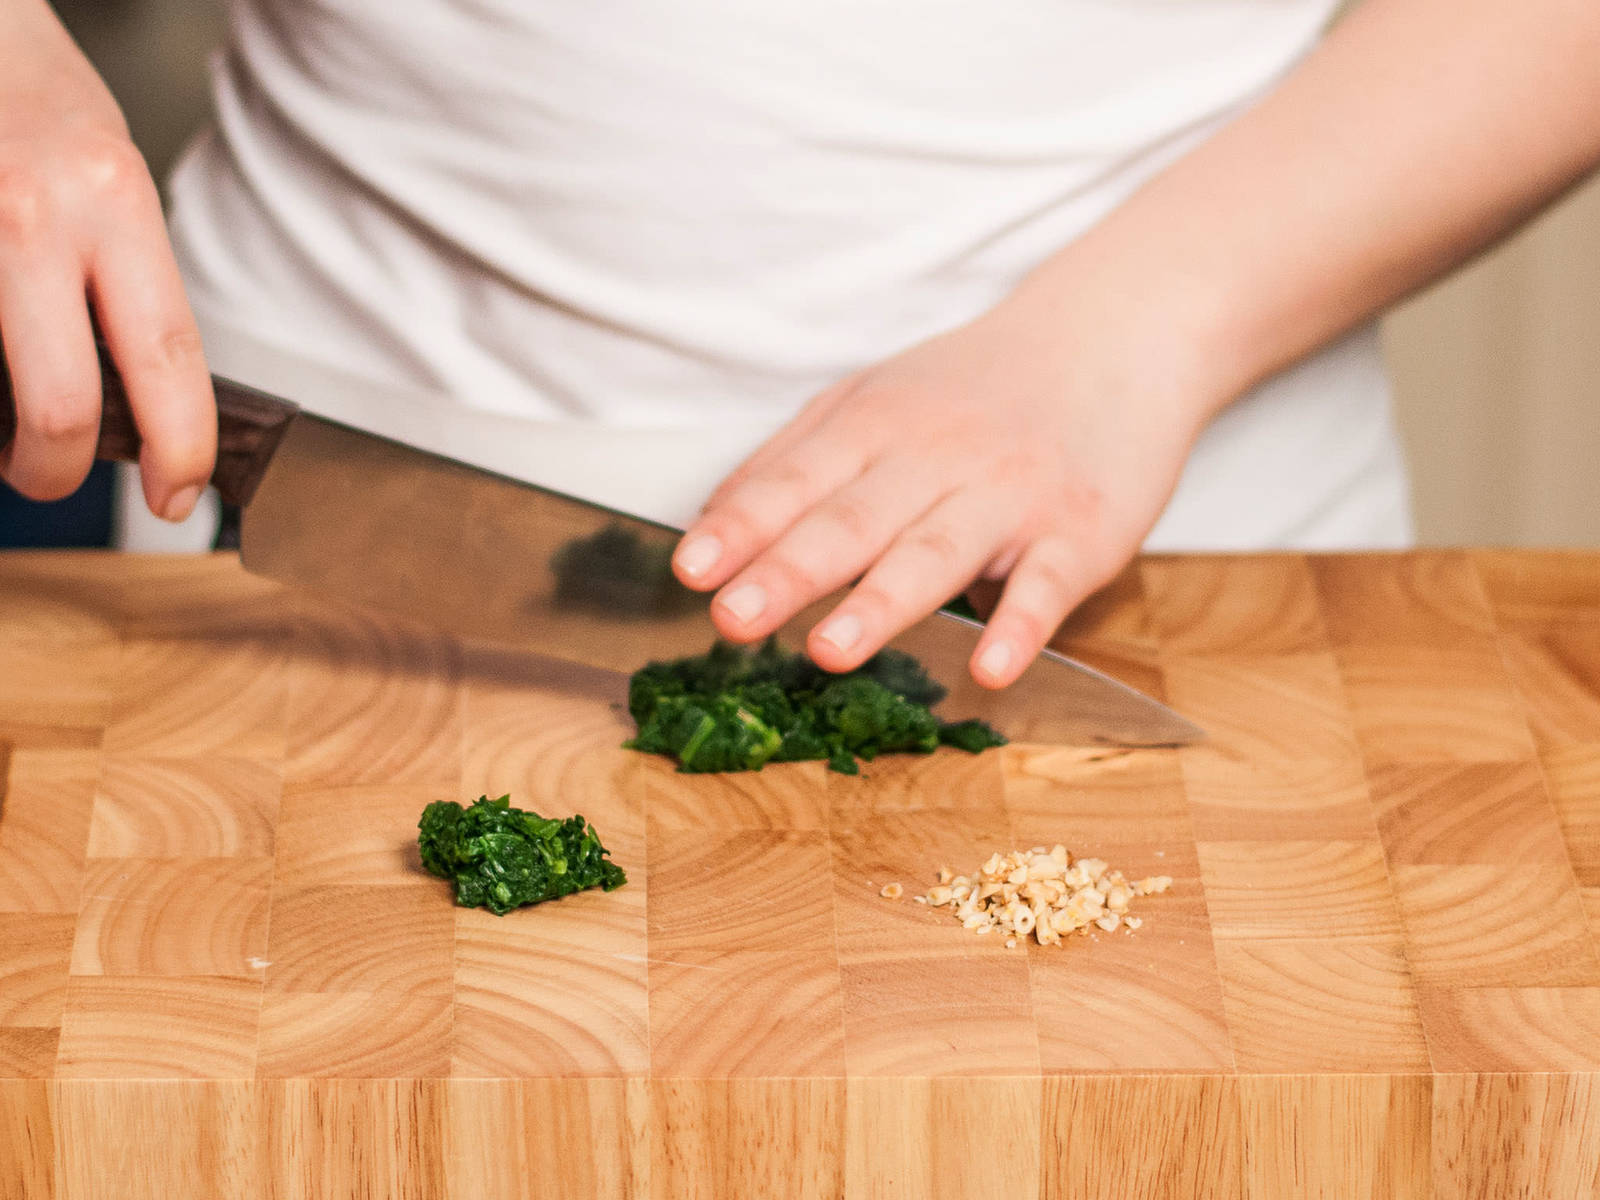 Finely chop pine nuts and blanched spinach.